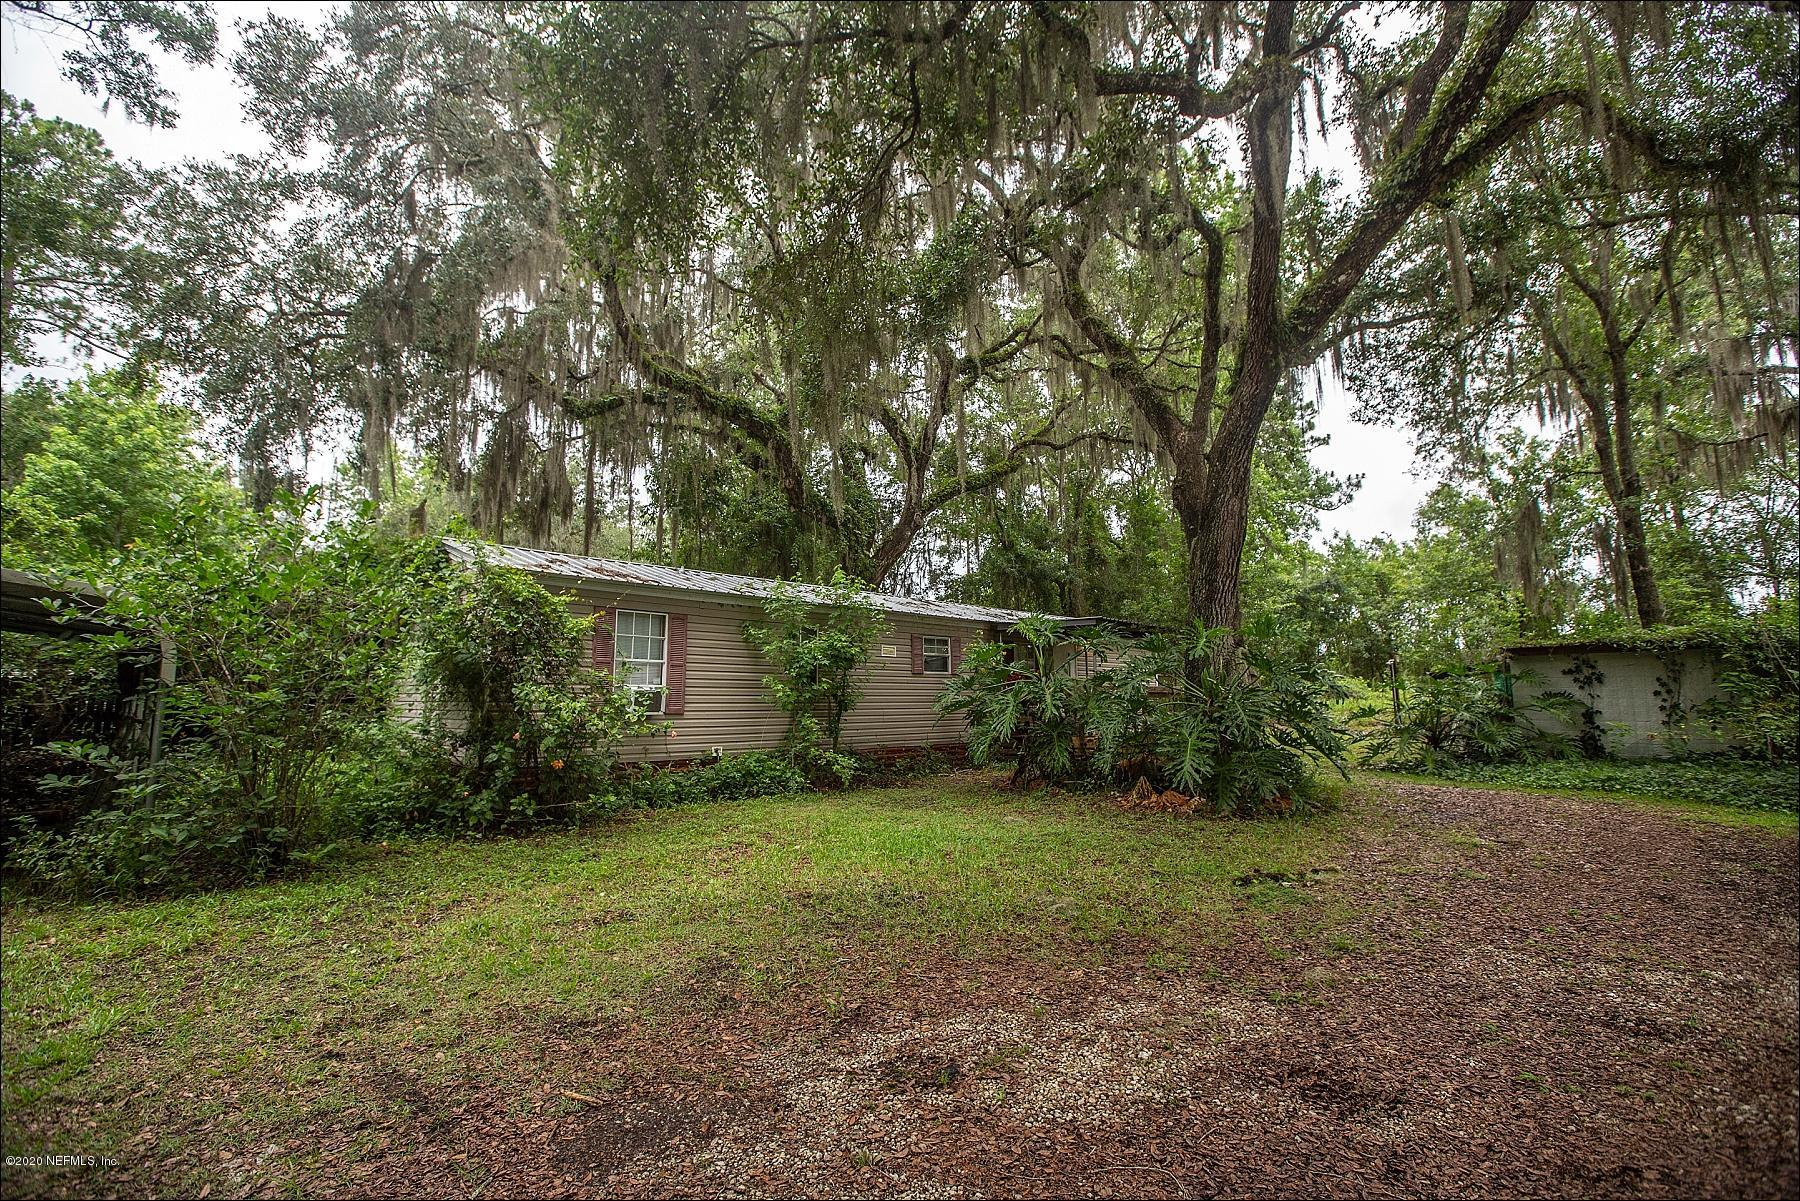 7806 COLEE COVE, ST AUGUSTINE, FLORIDA 32092, 2 Bedrooms Bedrooms, ,1 BathroomBathrooms,Residential,For sale,COLEE COVE,1057400